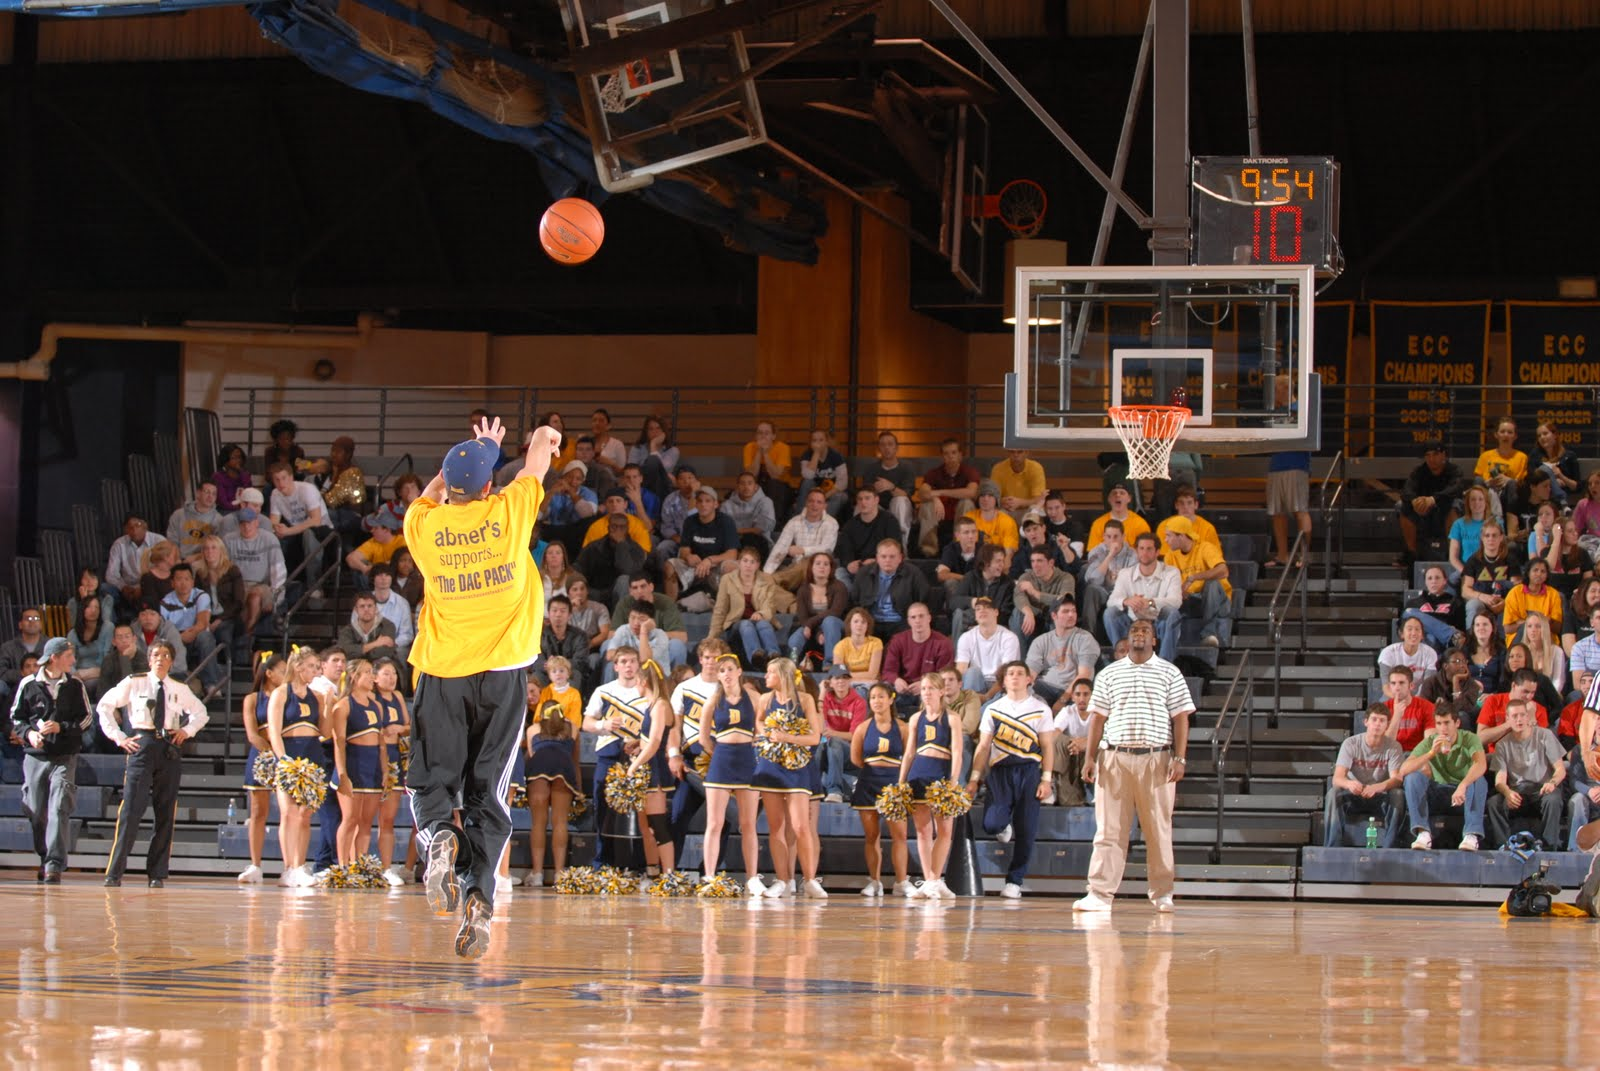 Blind Pass: Amazing Buzzer Beater Shot From Half Court On ...